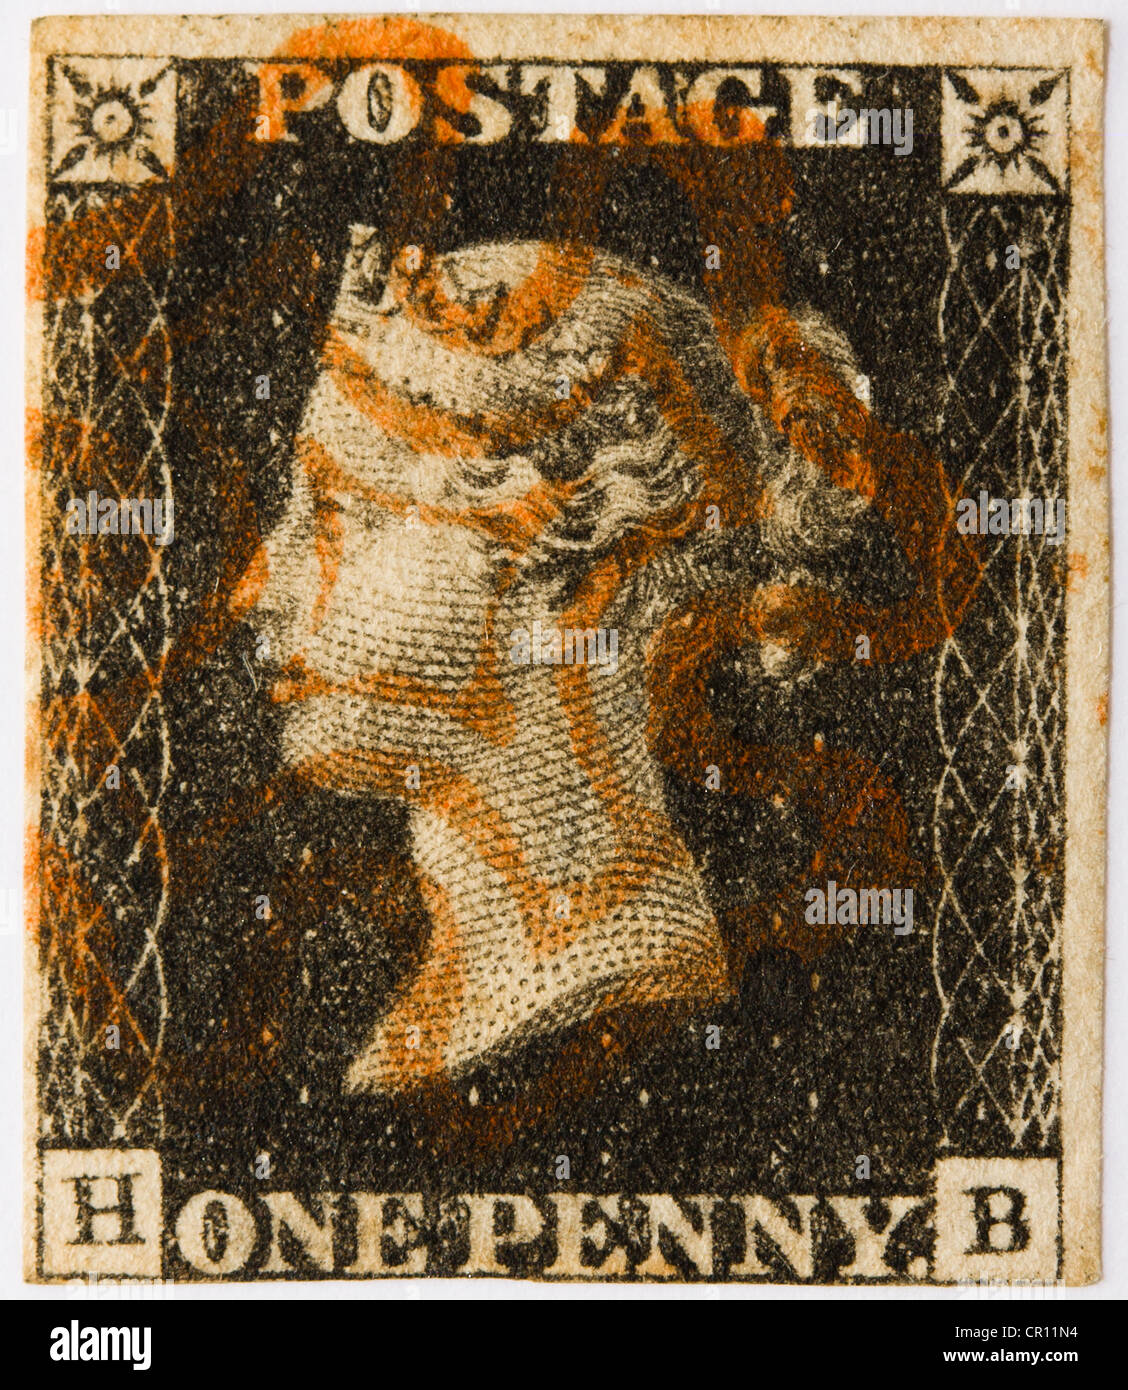 1840 Penny Black with a red Maltese Cross postmark - Stock Image